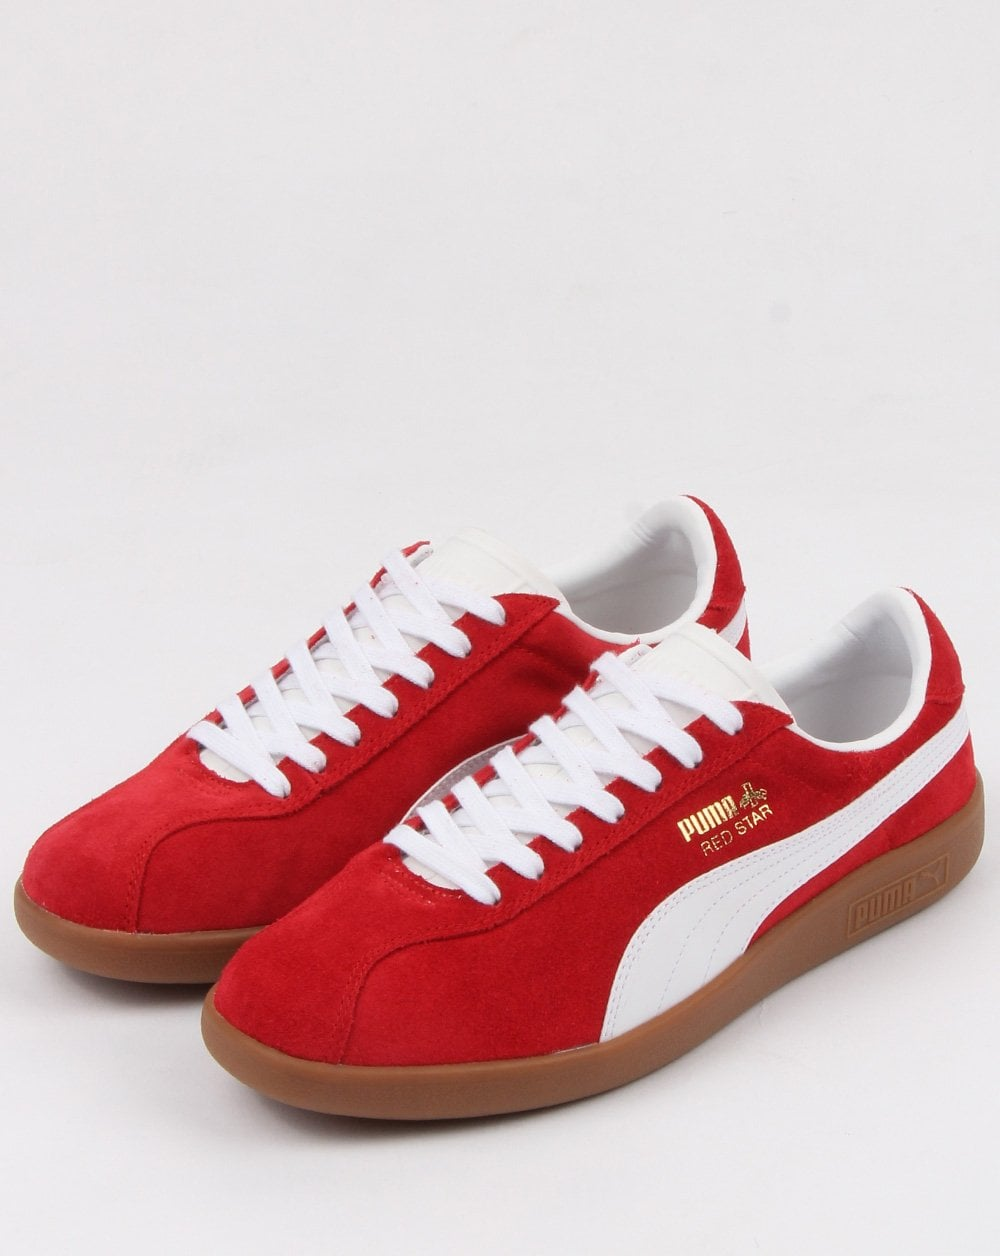 f7d2020ea4 Puma Red Star Trainer Red/white